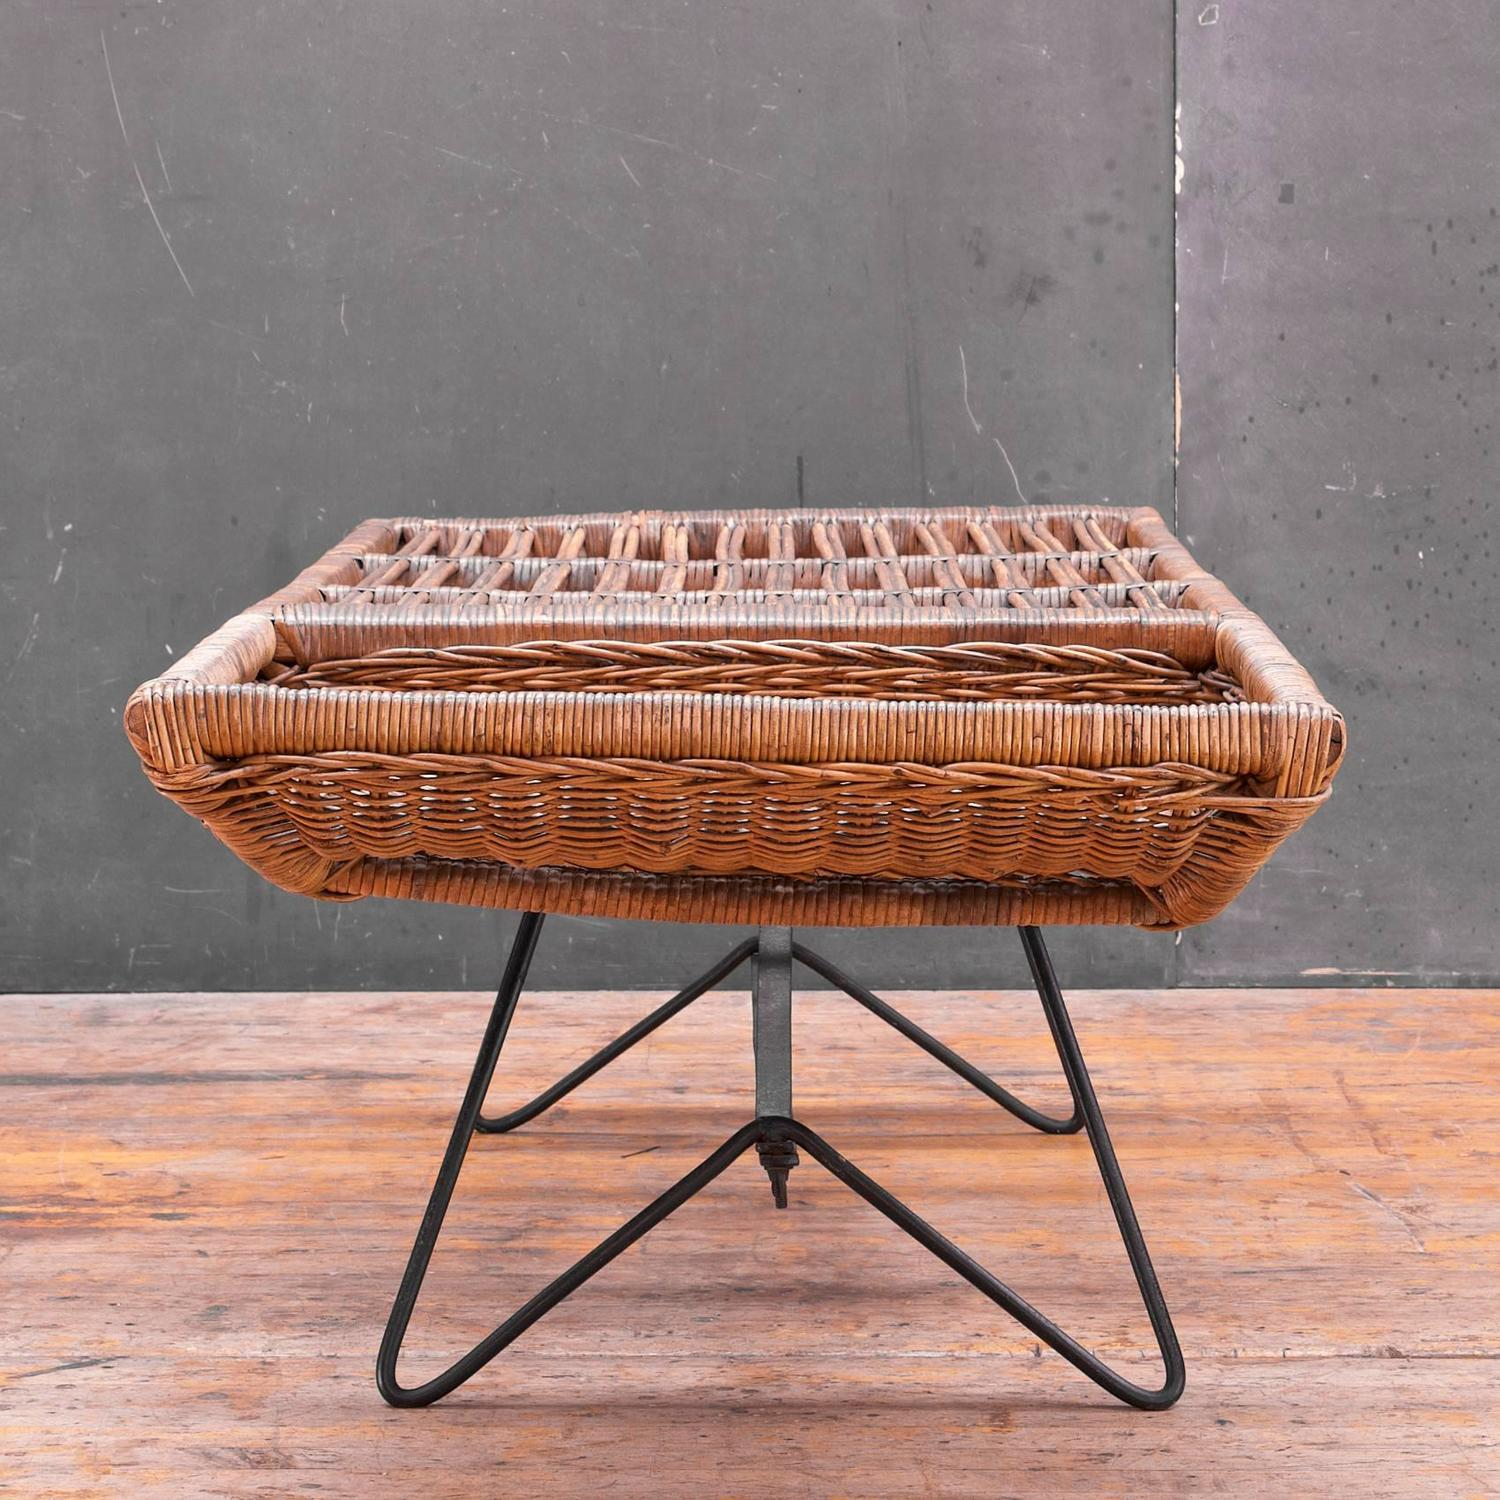 Modernist cane basket iron rod patio coffee table at 1stdibs Coffee table with wicker baskets